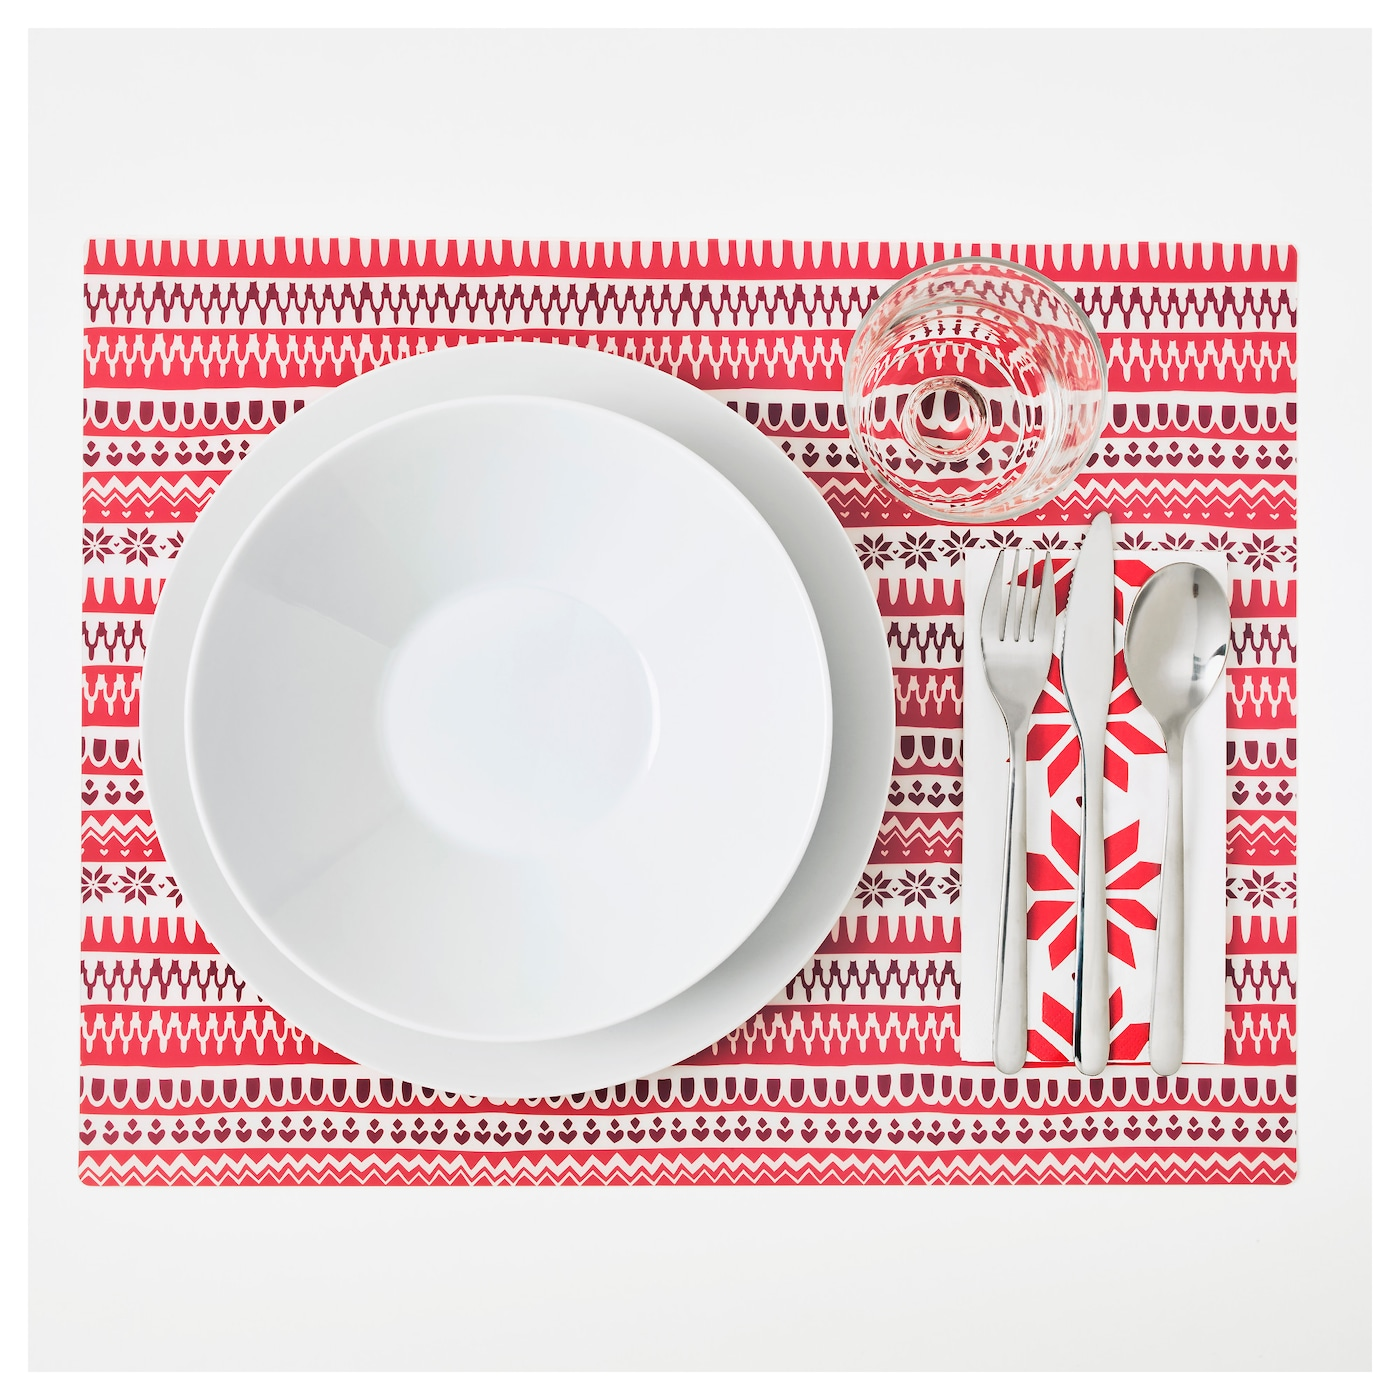 IKEA VINTER 2017 place mat Protects the table top surface and reduces noise from plates and cutlery.